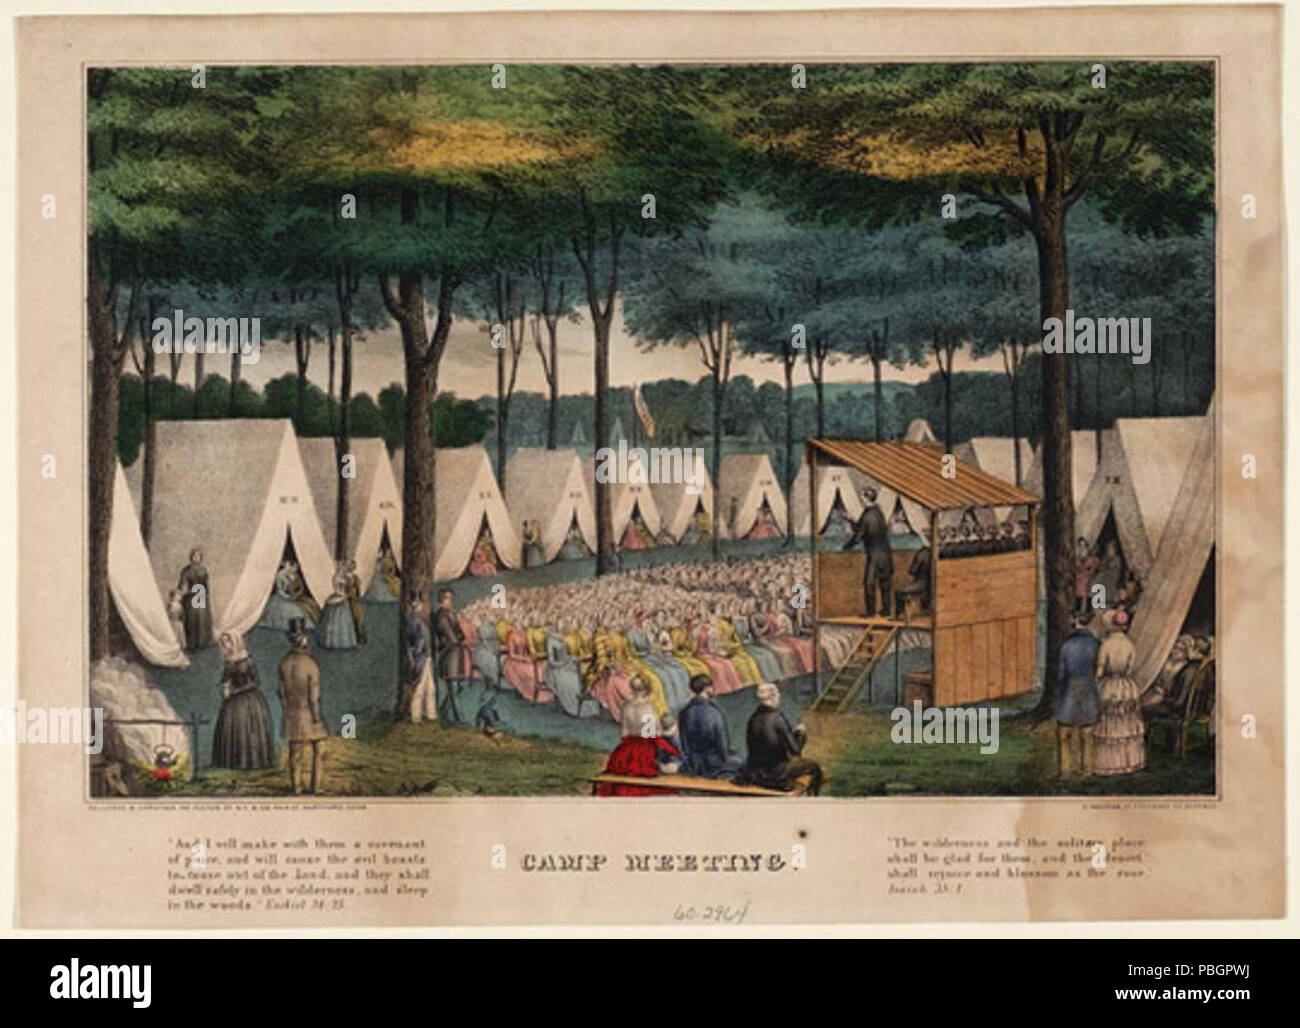 English: Tent revivals were a hallmark of the Second Great